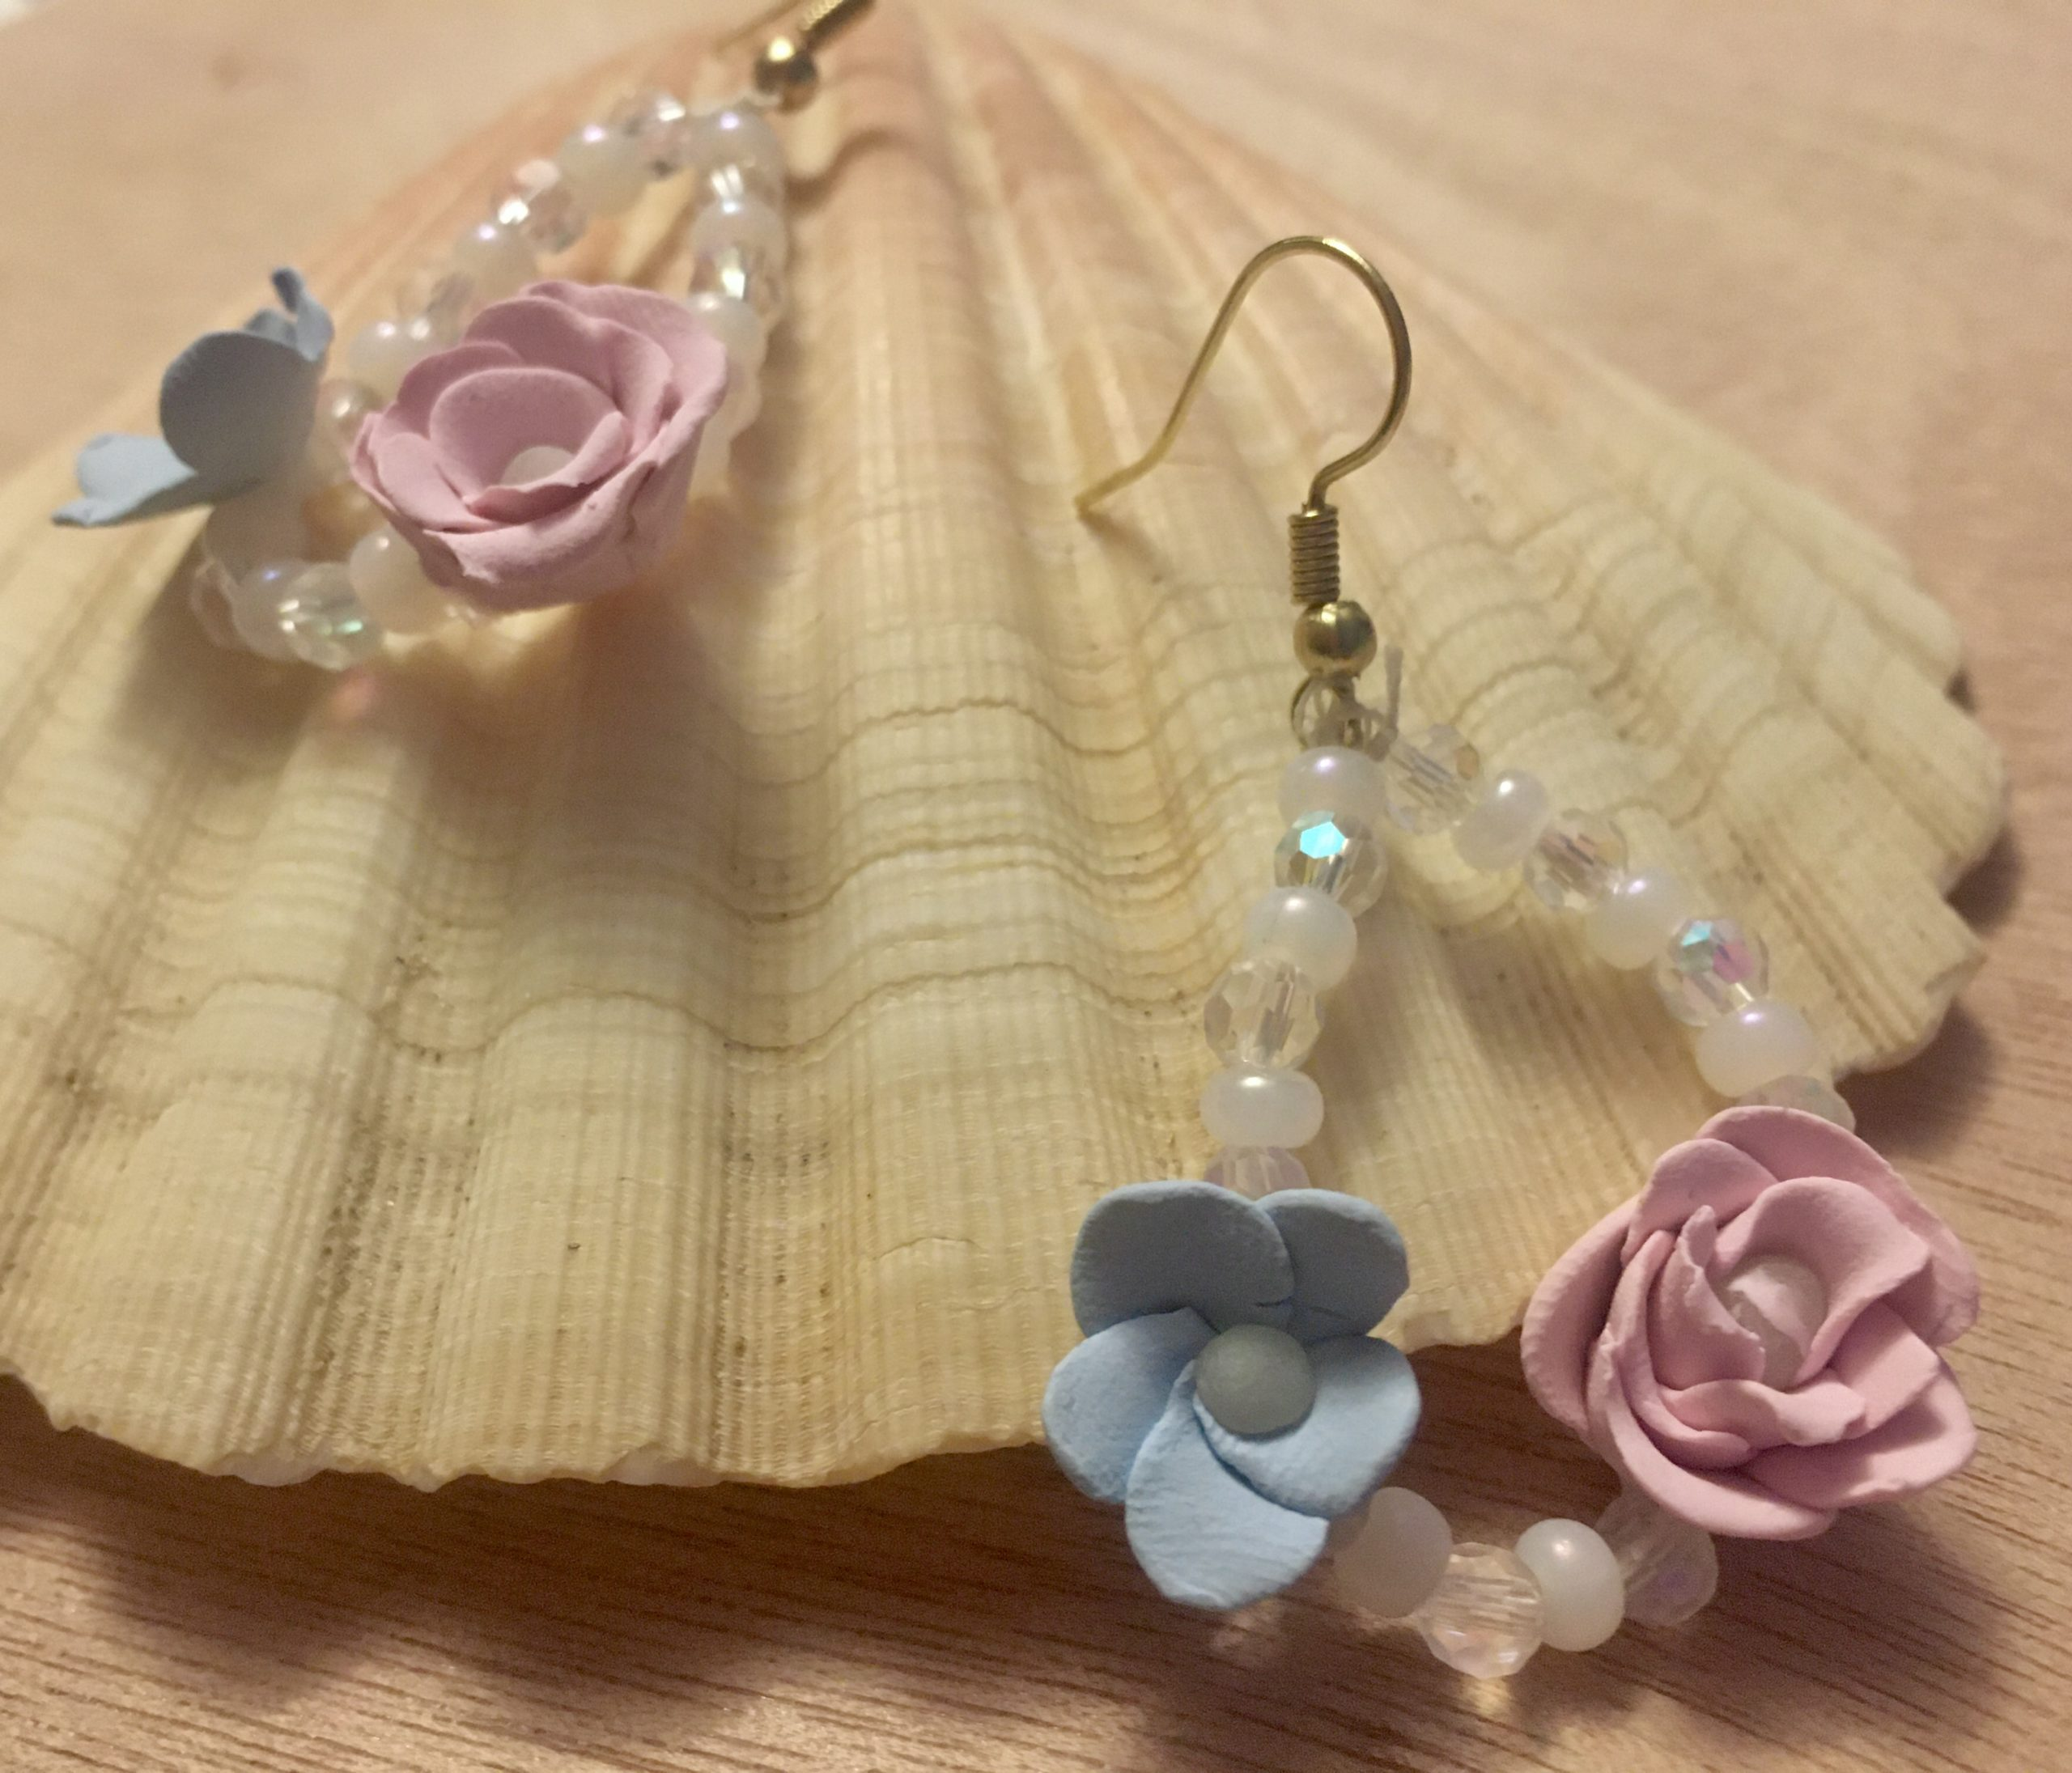 The journey of each unique creation brings it's own joy, much like these beautiful pastel flower earrings brought me.